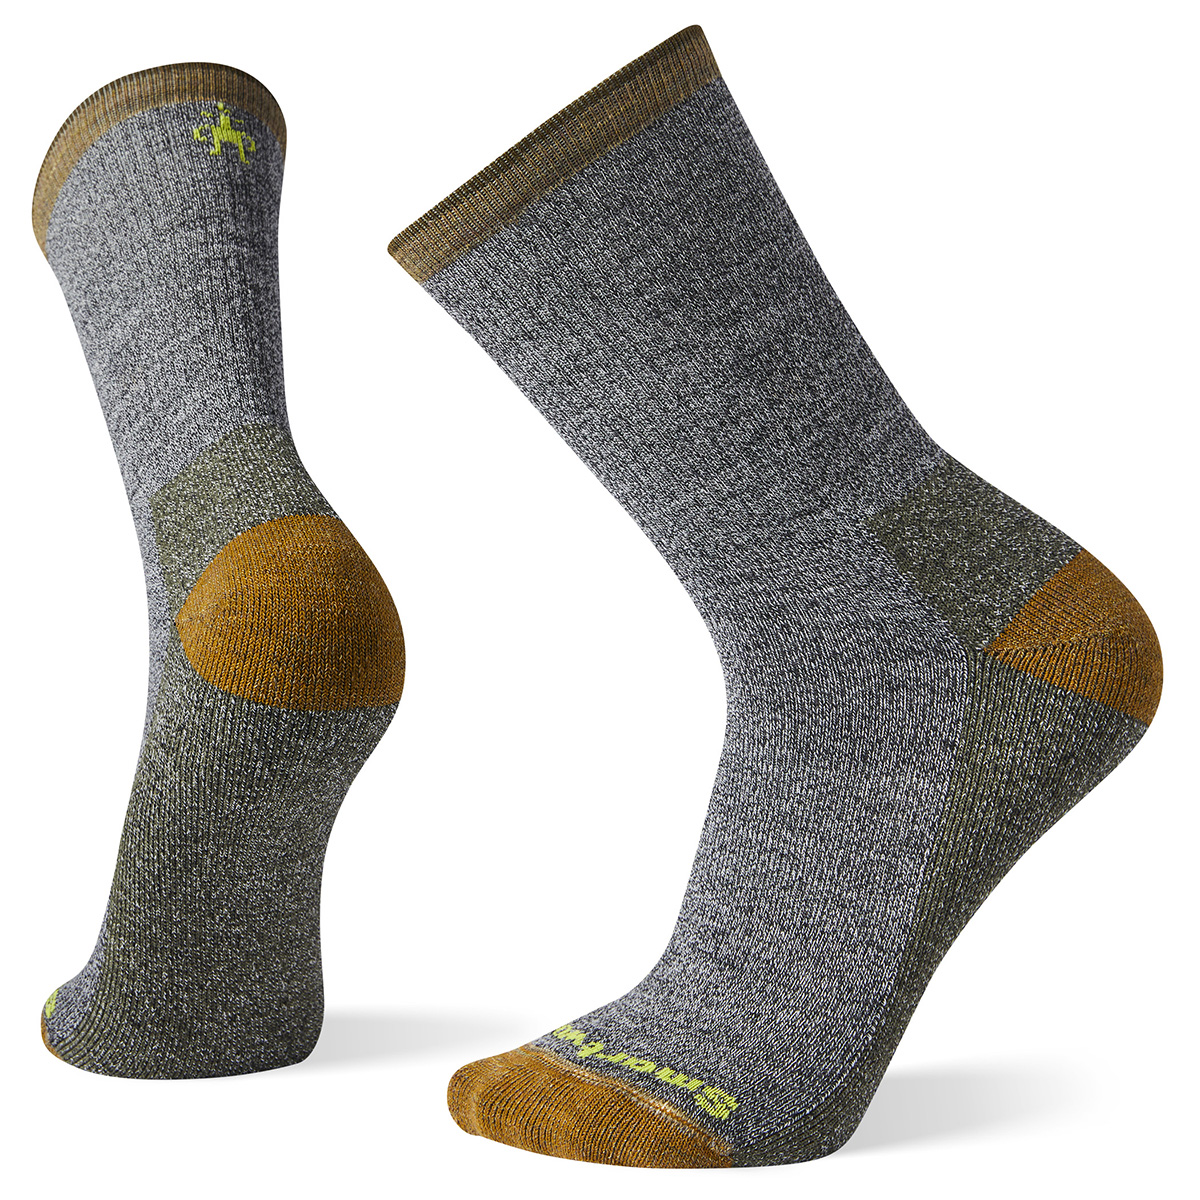 Smartwool Men's Light Hiker Street Crew Socks